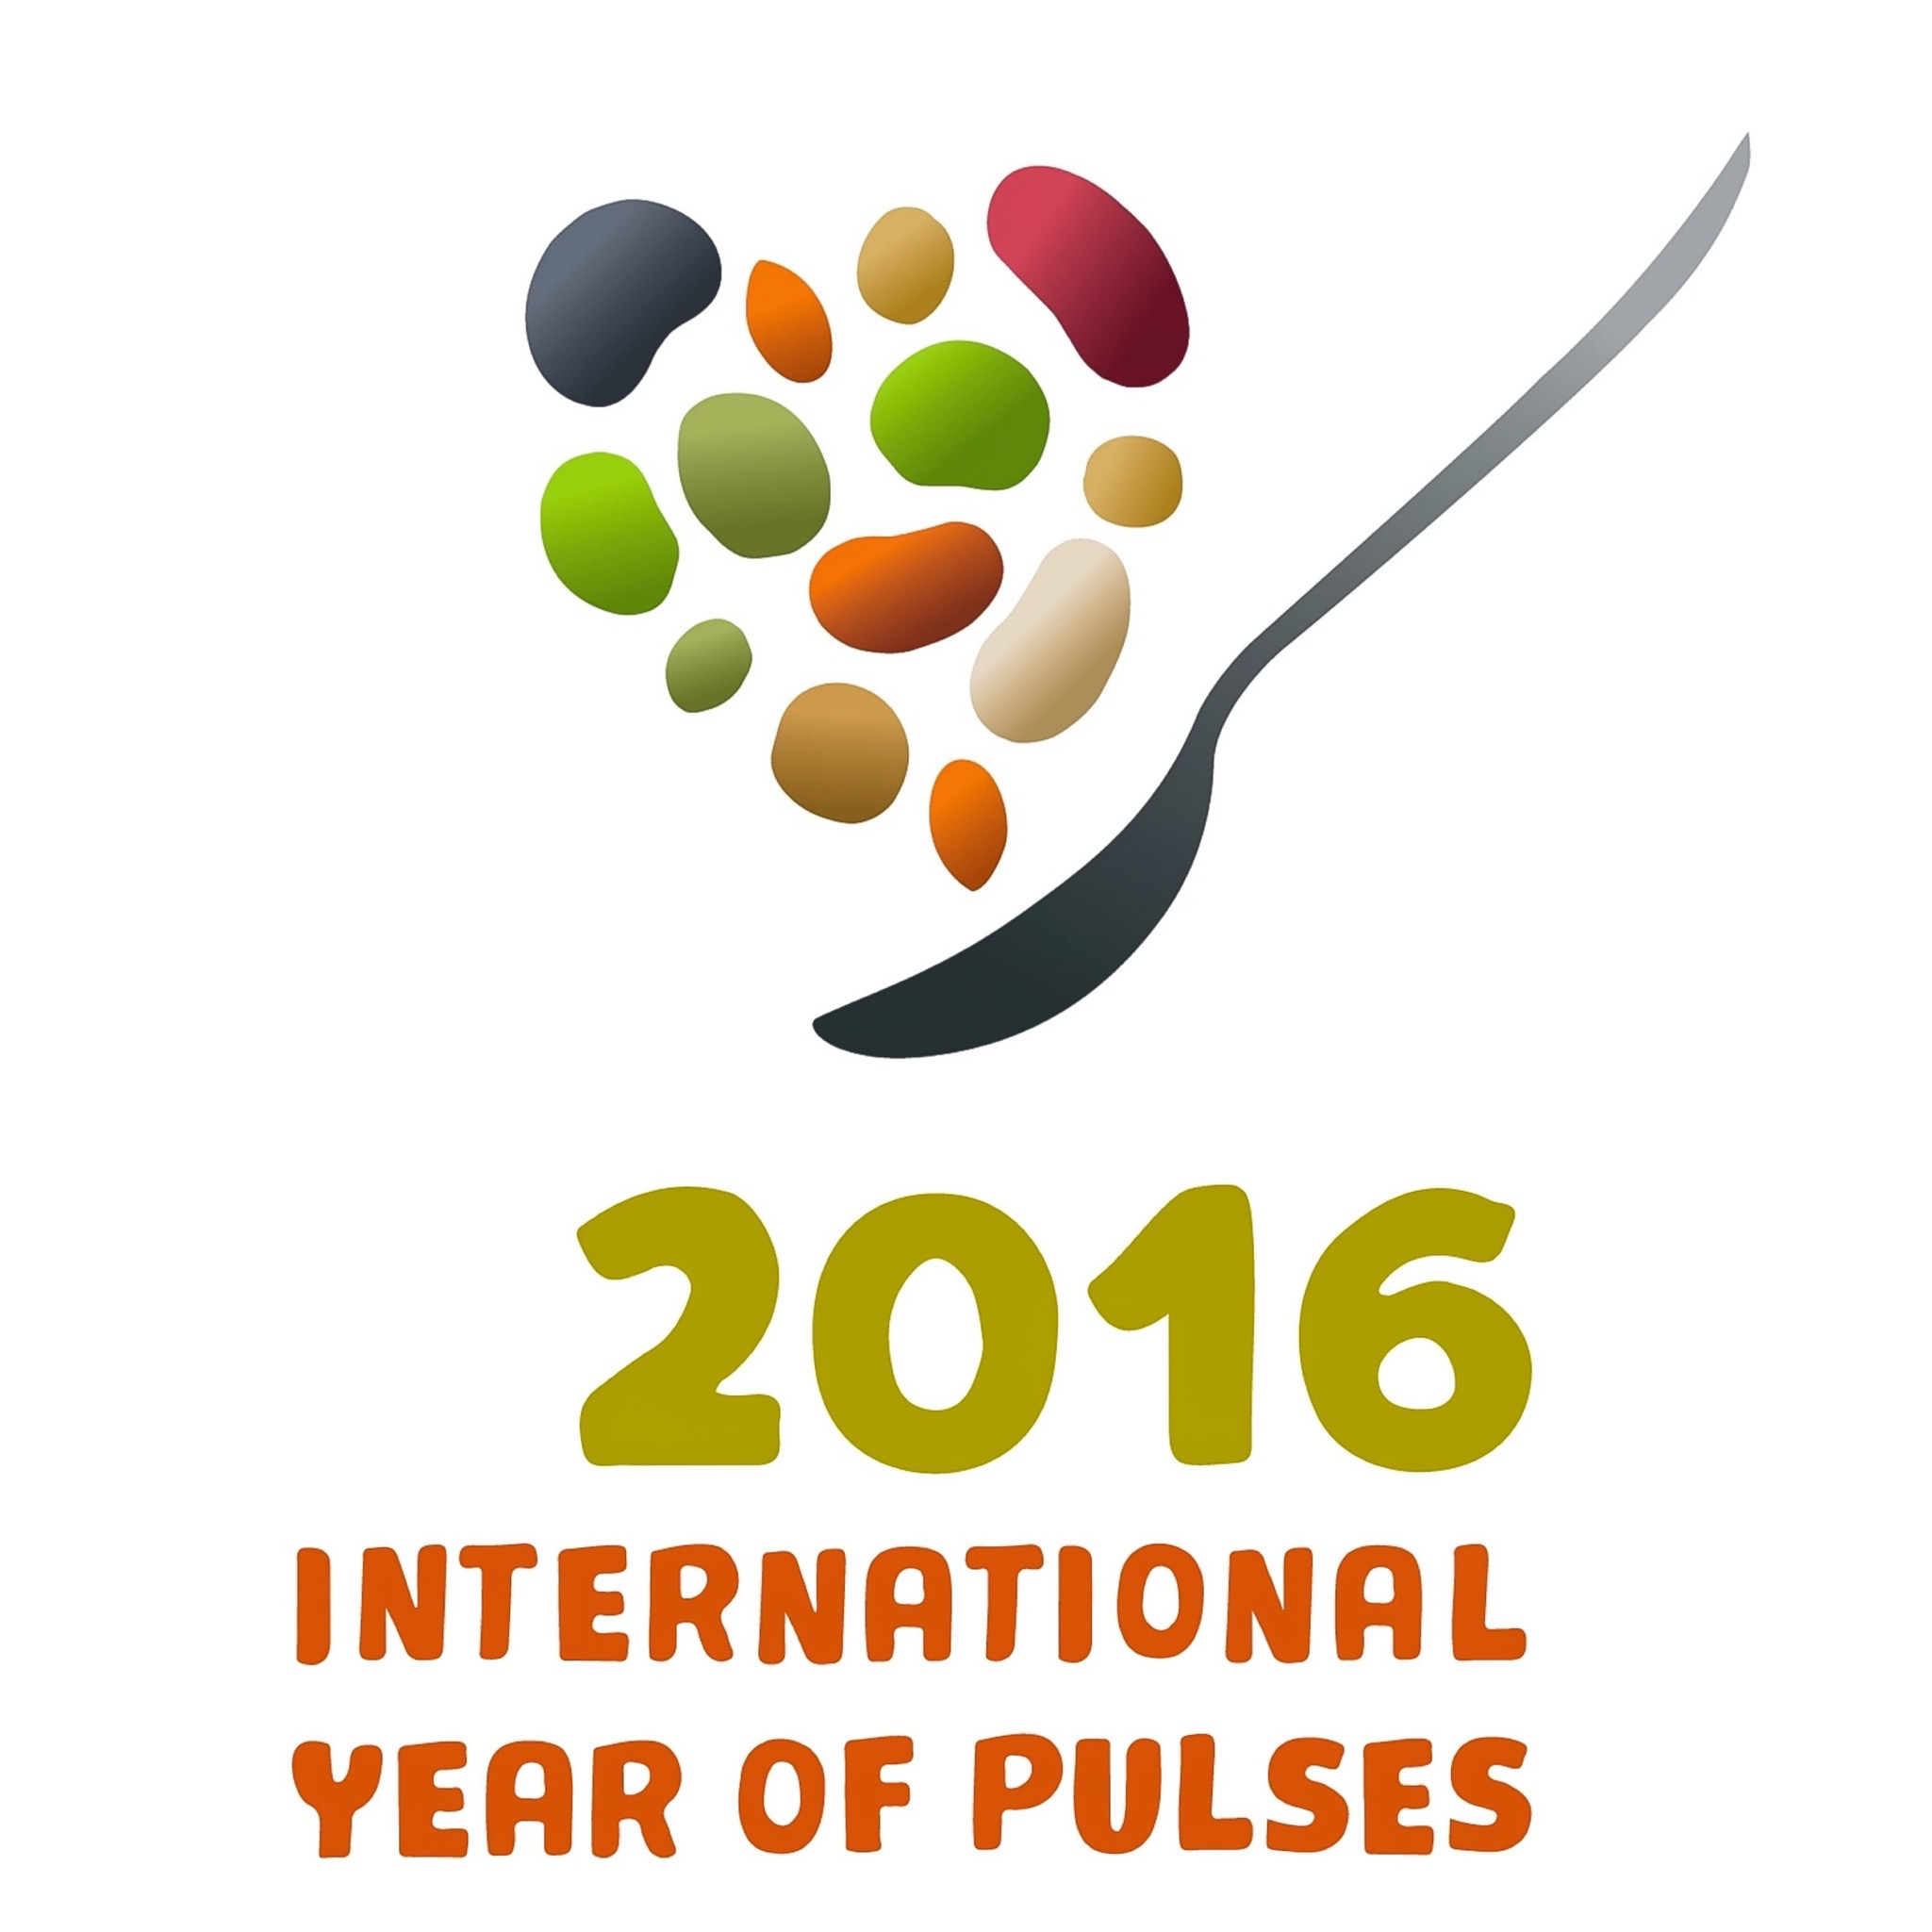 IMAGE SOURCE:http://www.fao.org/pulses-2016/communications-toolkit/download-iyp-logo/en/